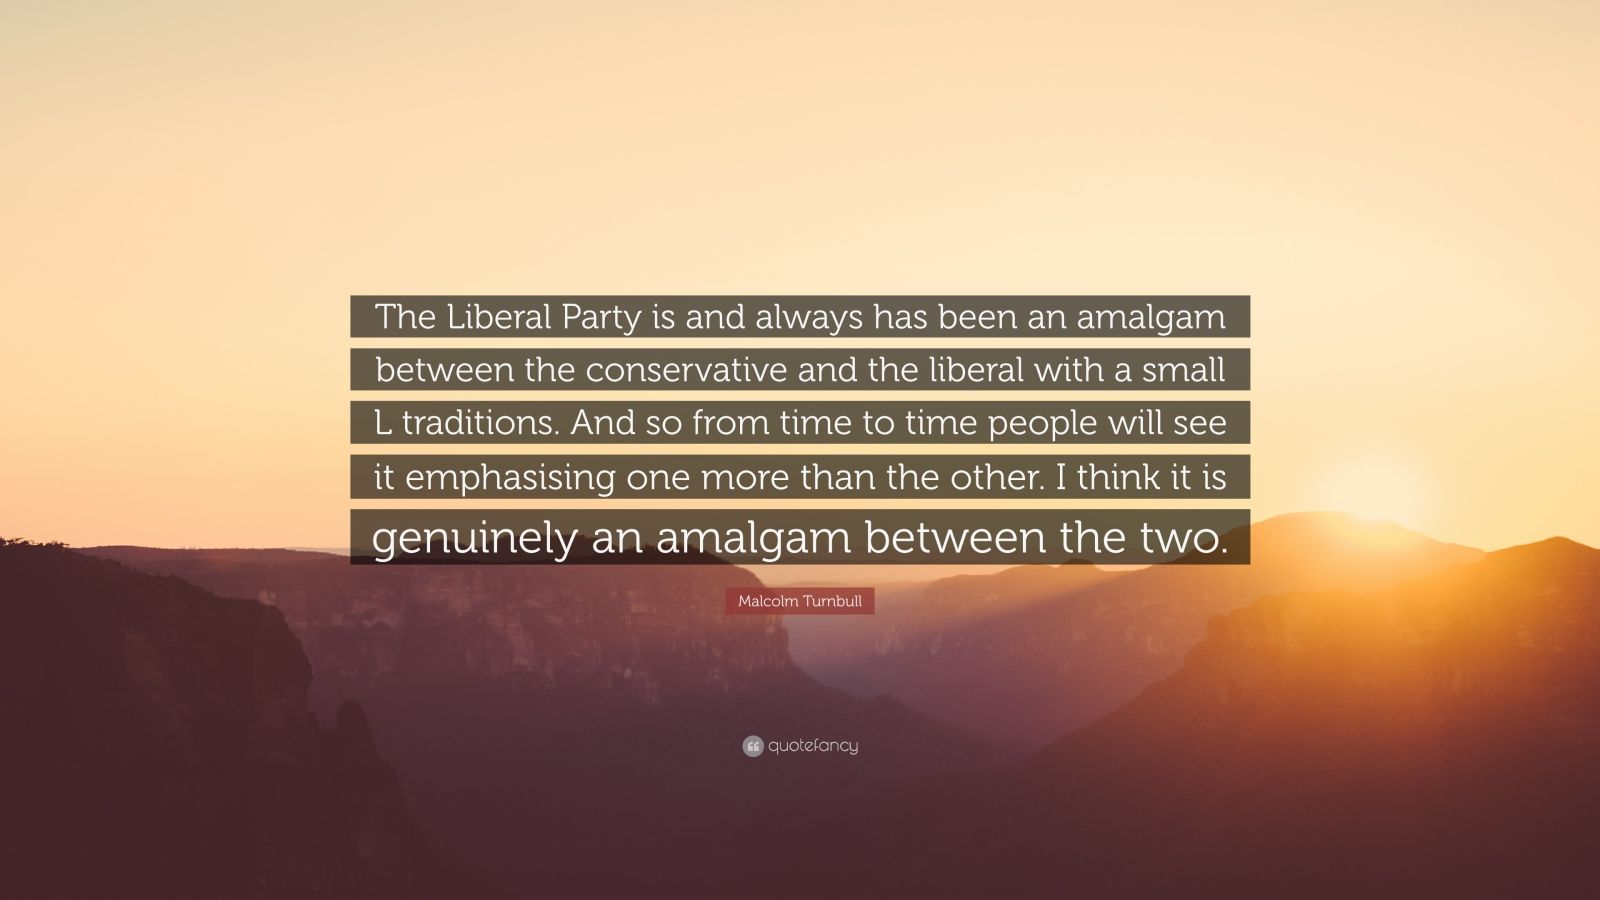 """Malcolm Turnbull Quote: """"The Liberal Party is and always has been an amalgam between the conservative and the liberal with a small L traditions. And so from time to time people will see it emphasising one more than the other. I think it is genuinely an amalgam between the two."""""""